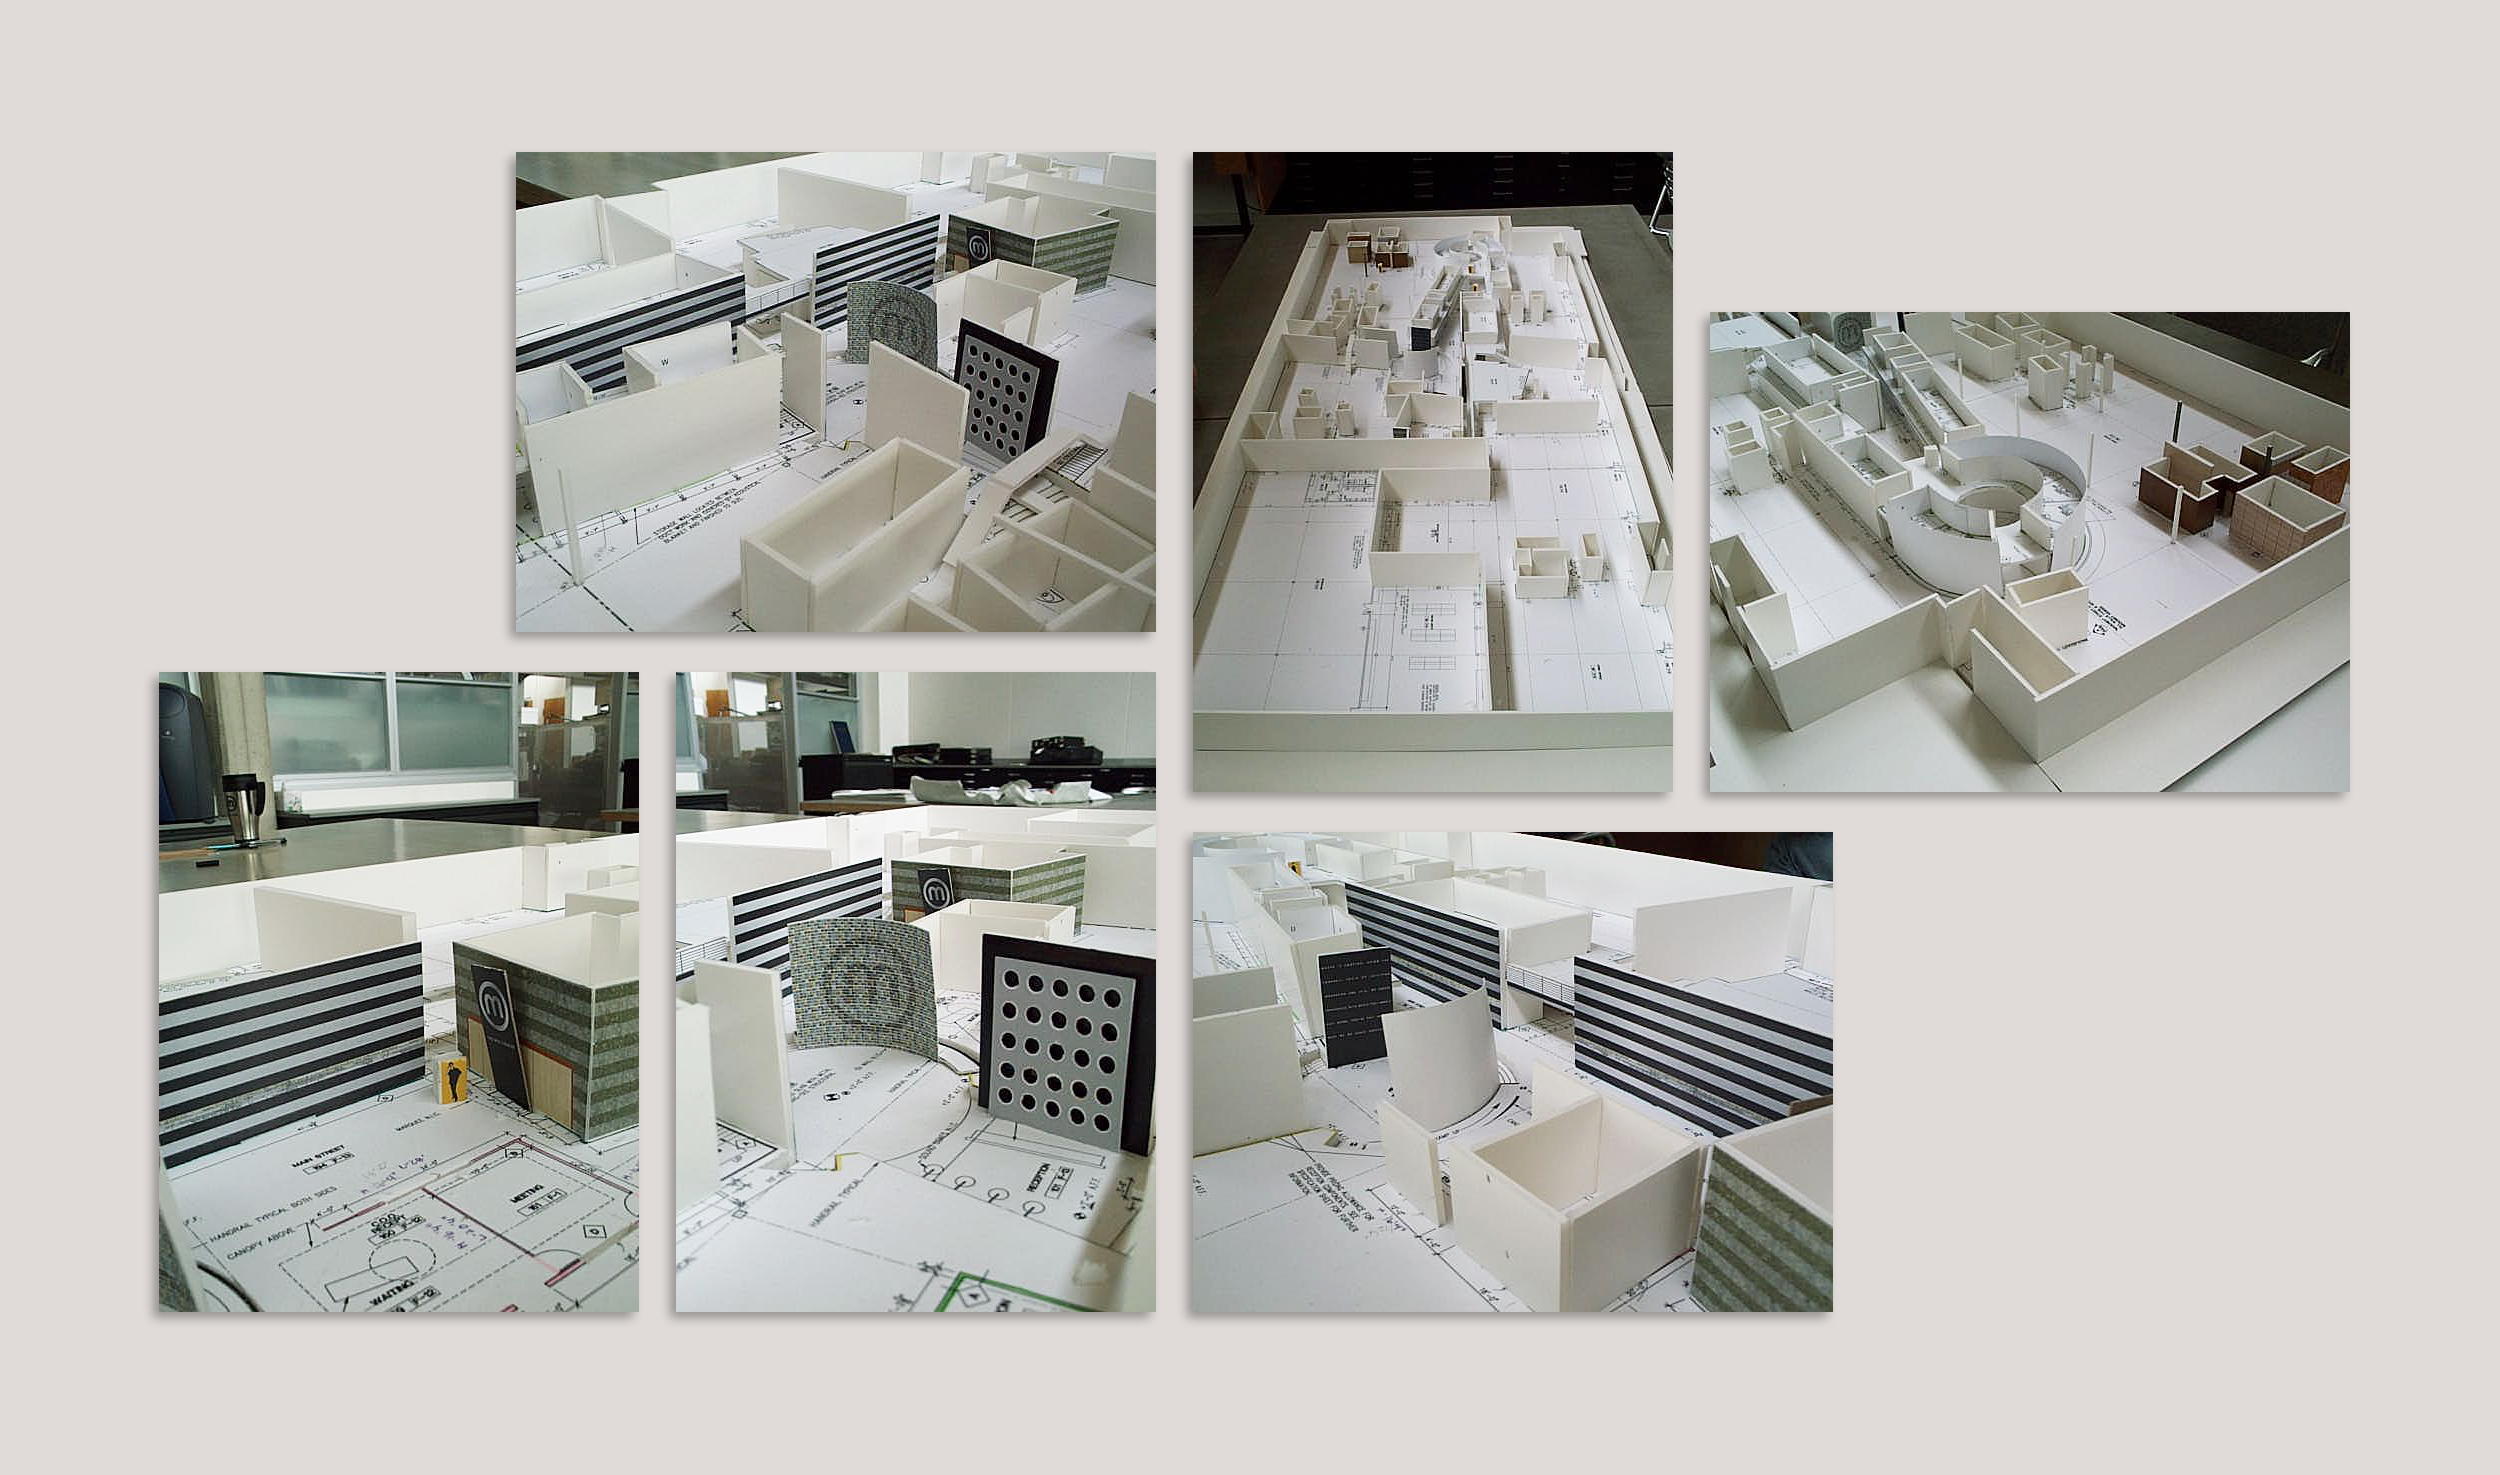 Built Model for Environmental Graphics Development